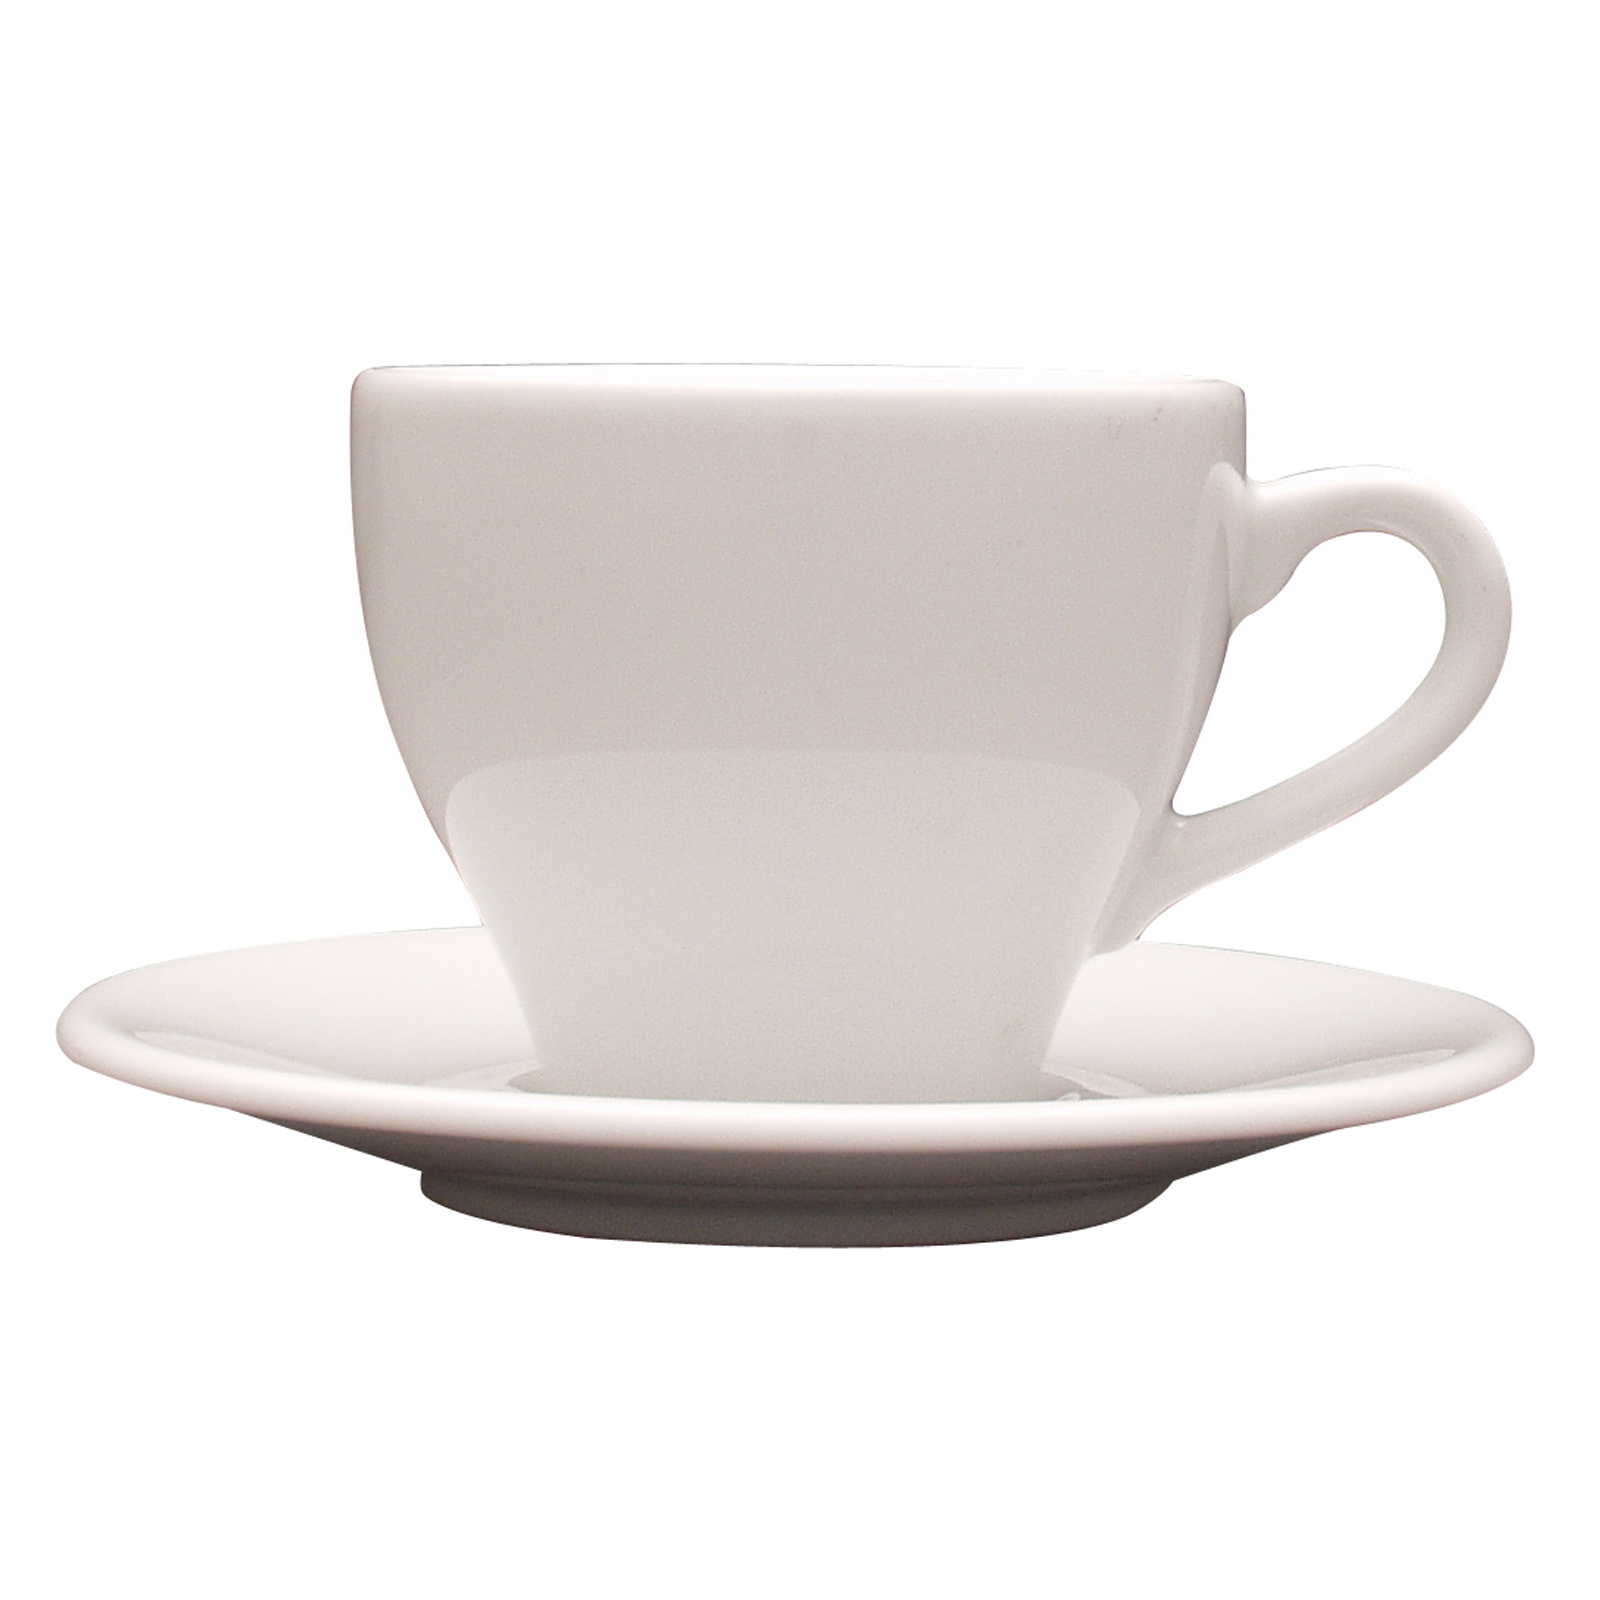 Set of 24 Paula Cappuccino Saucers by Lubiana